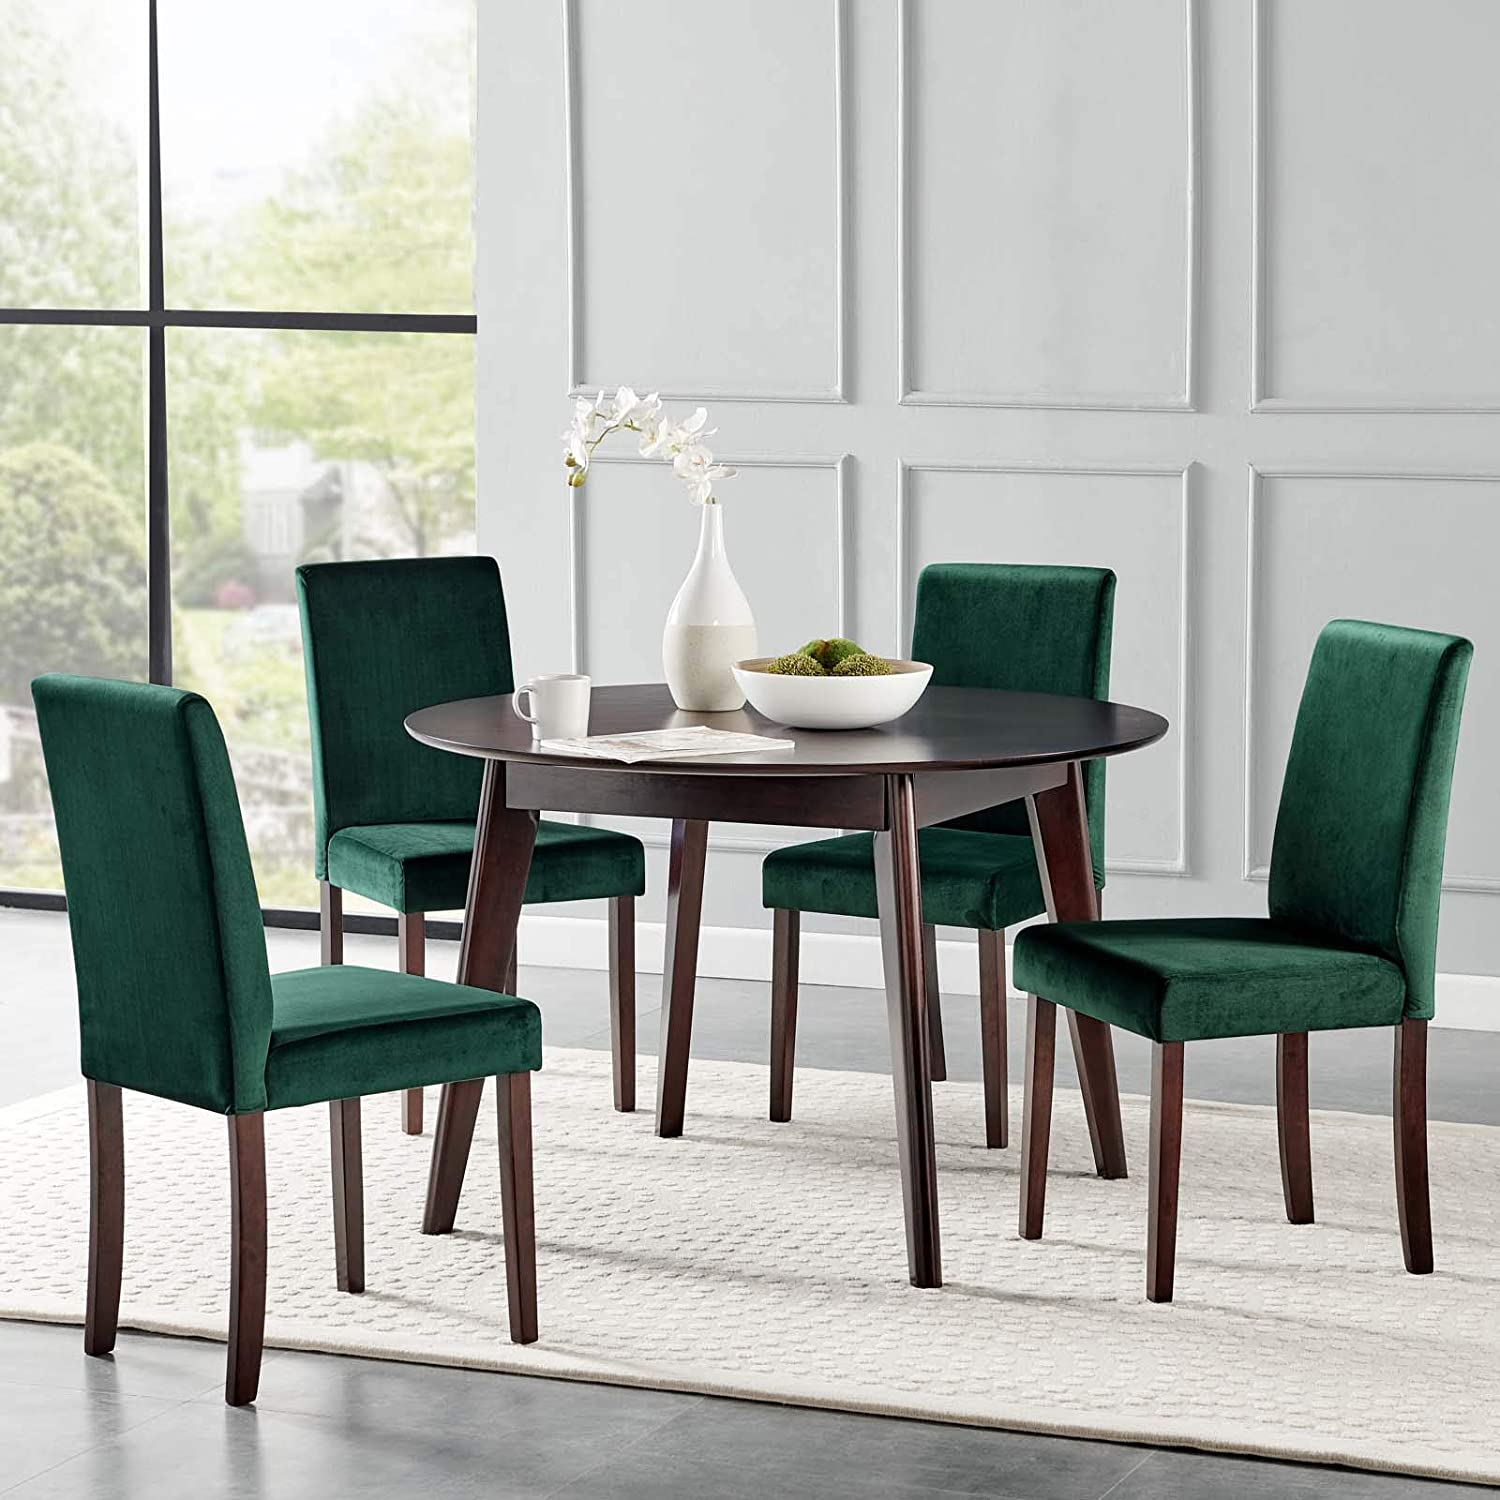 Amazon Com Modway Prosper 5 Piece Upholstered Velvet Dining Set Cappuccino Green Table Chair Sets